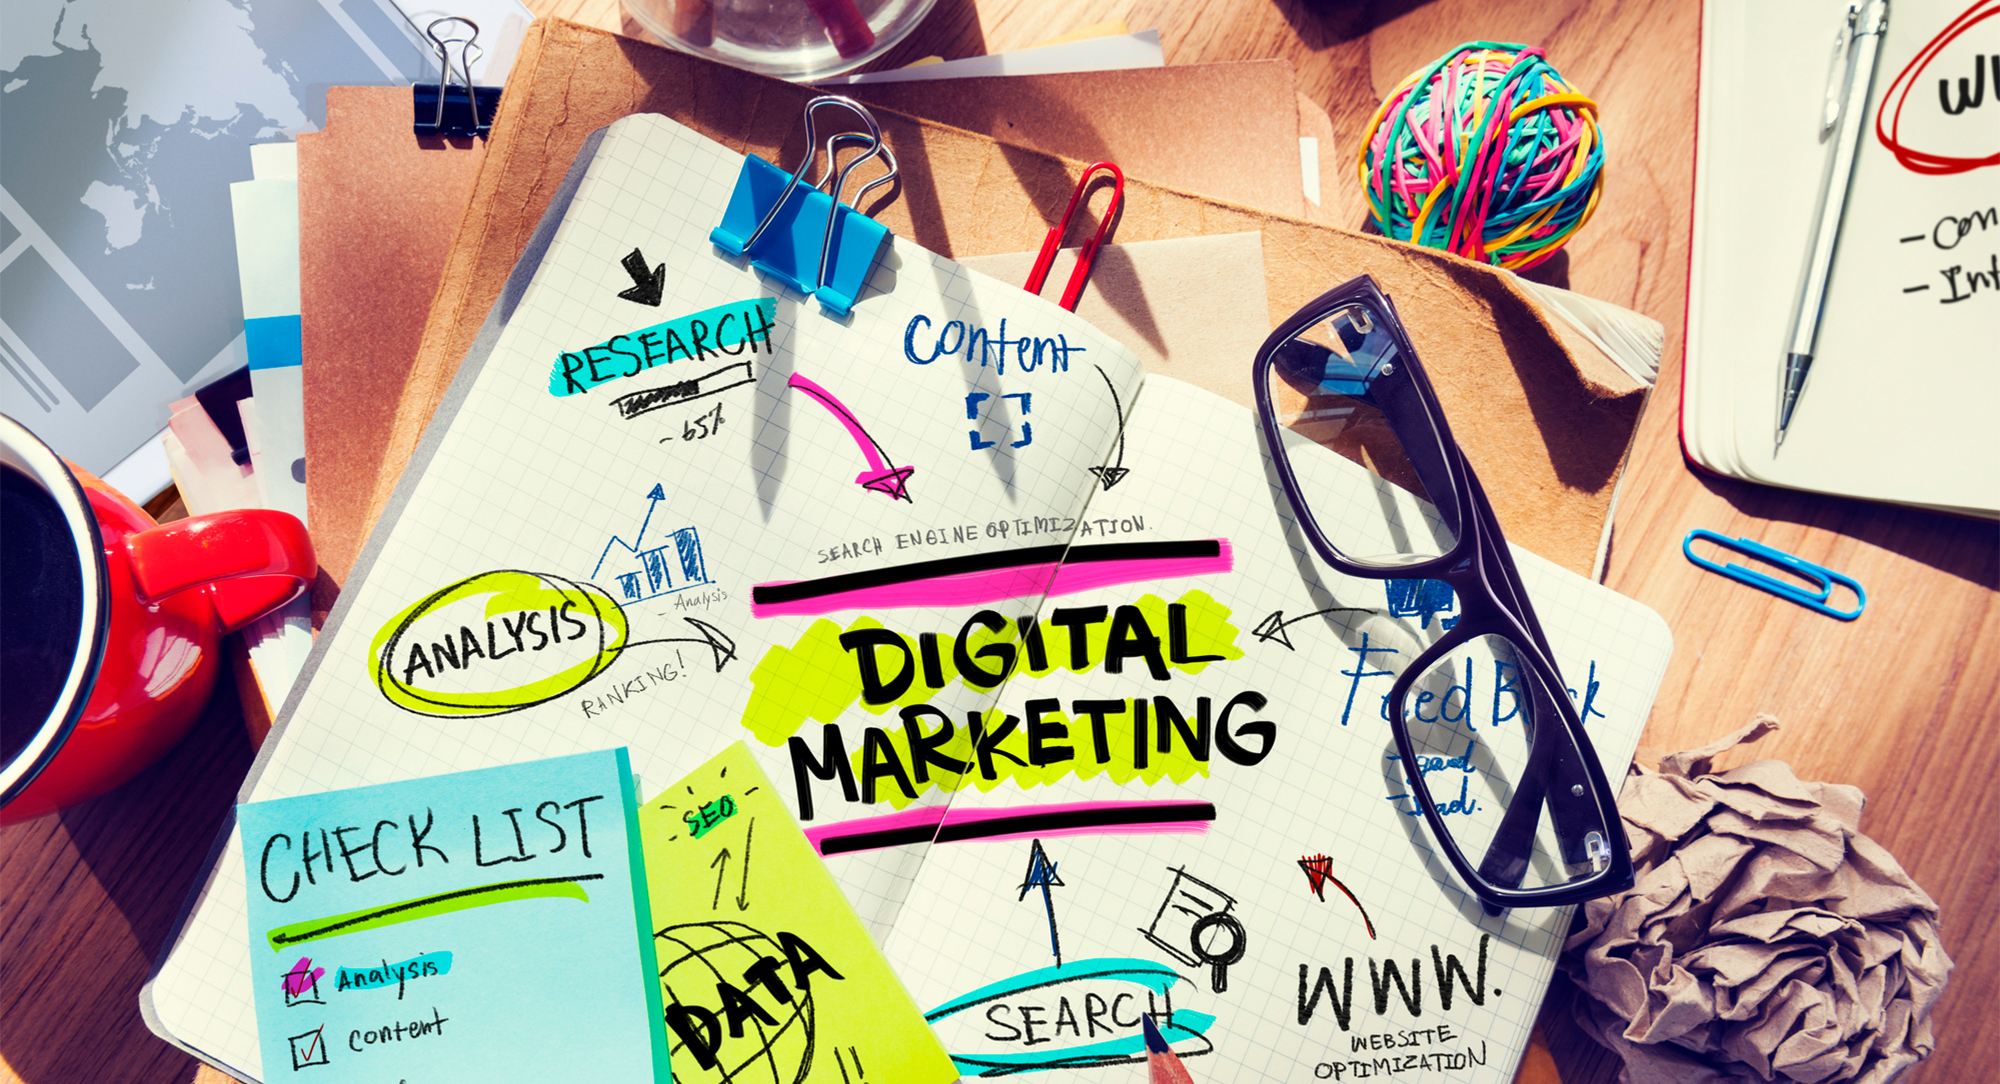 The Top 5 Sales Questions To Ask A Digital Marketing Agency